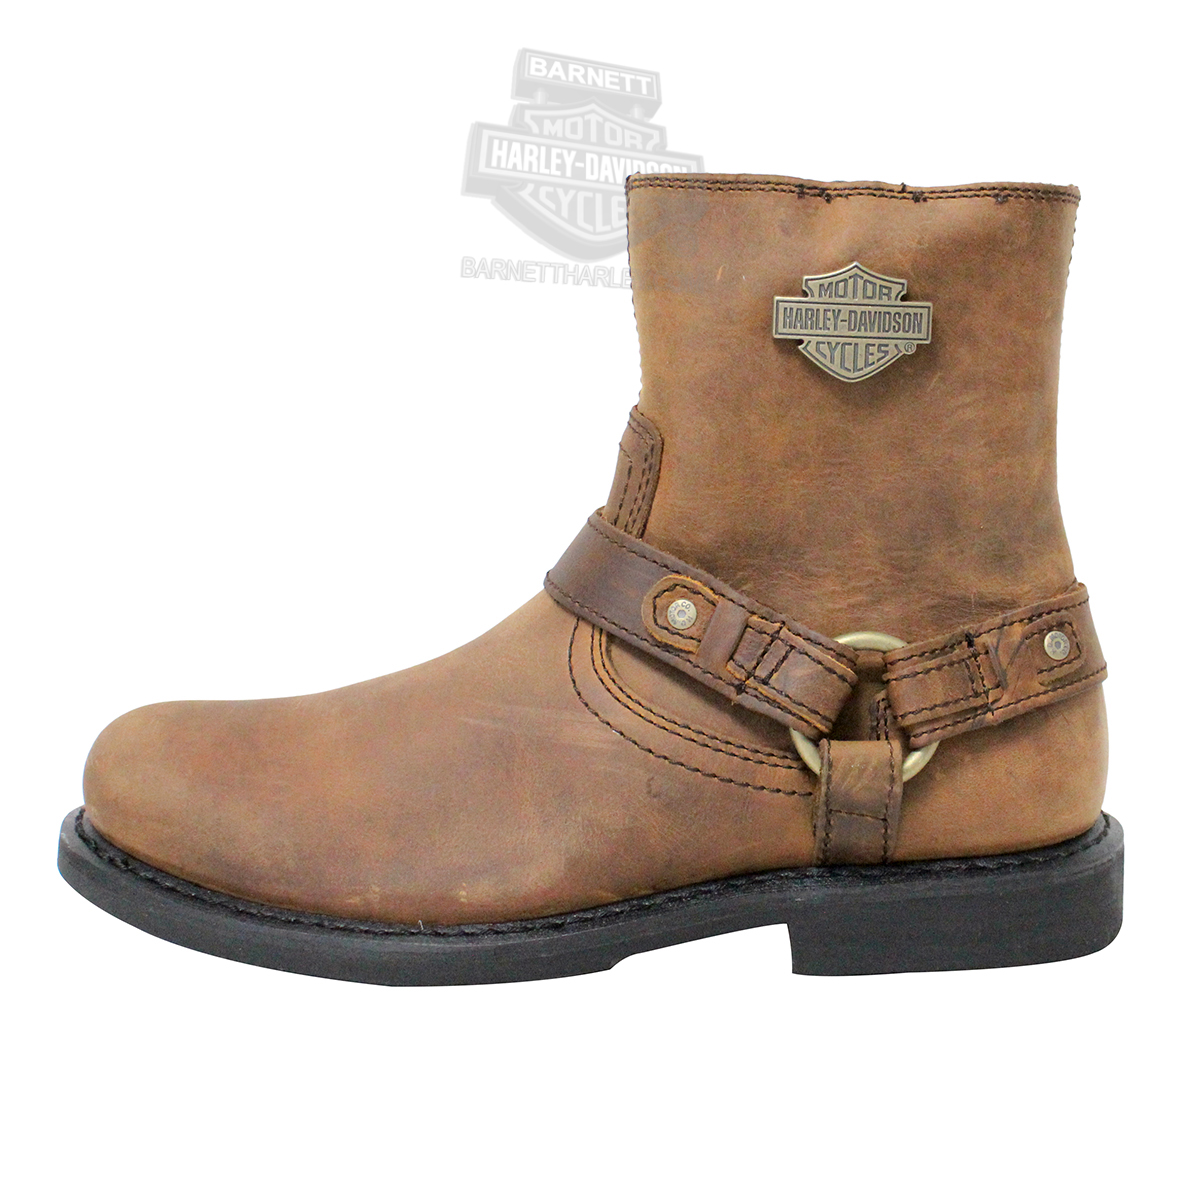 95263 harley davidson 174 mens scout brown low cut boot